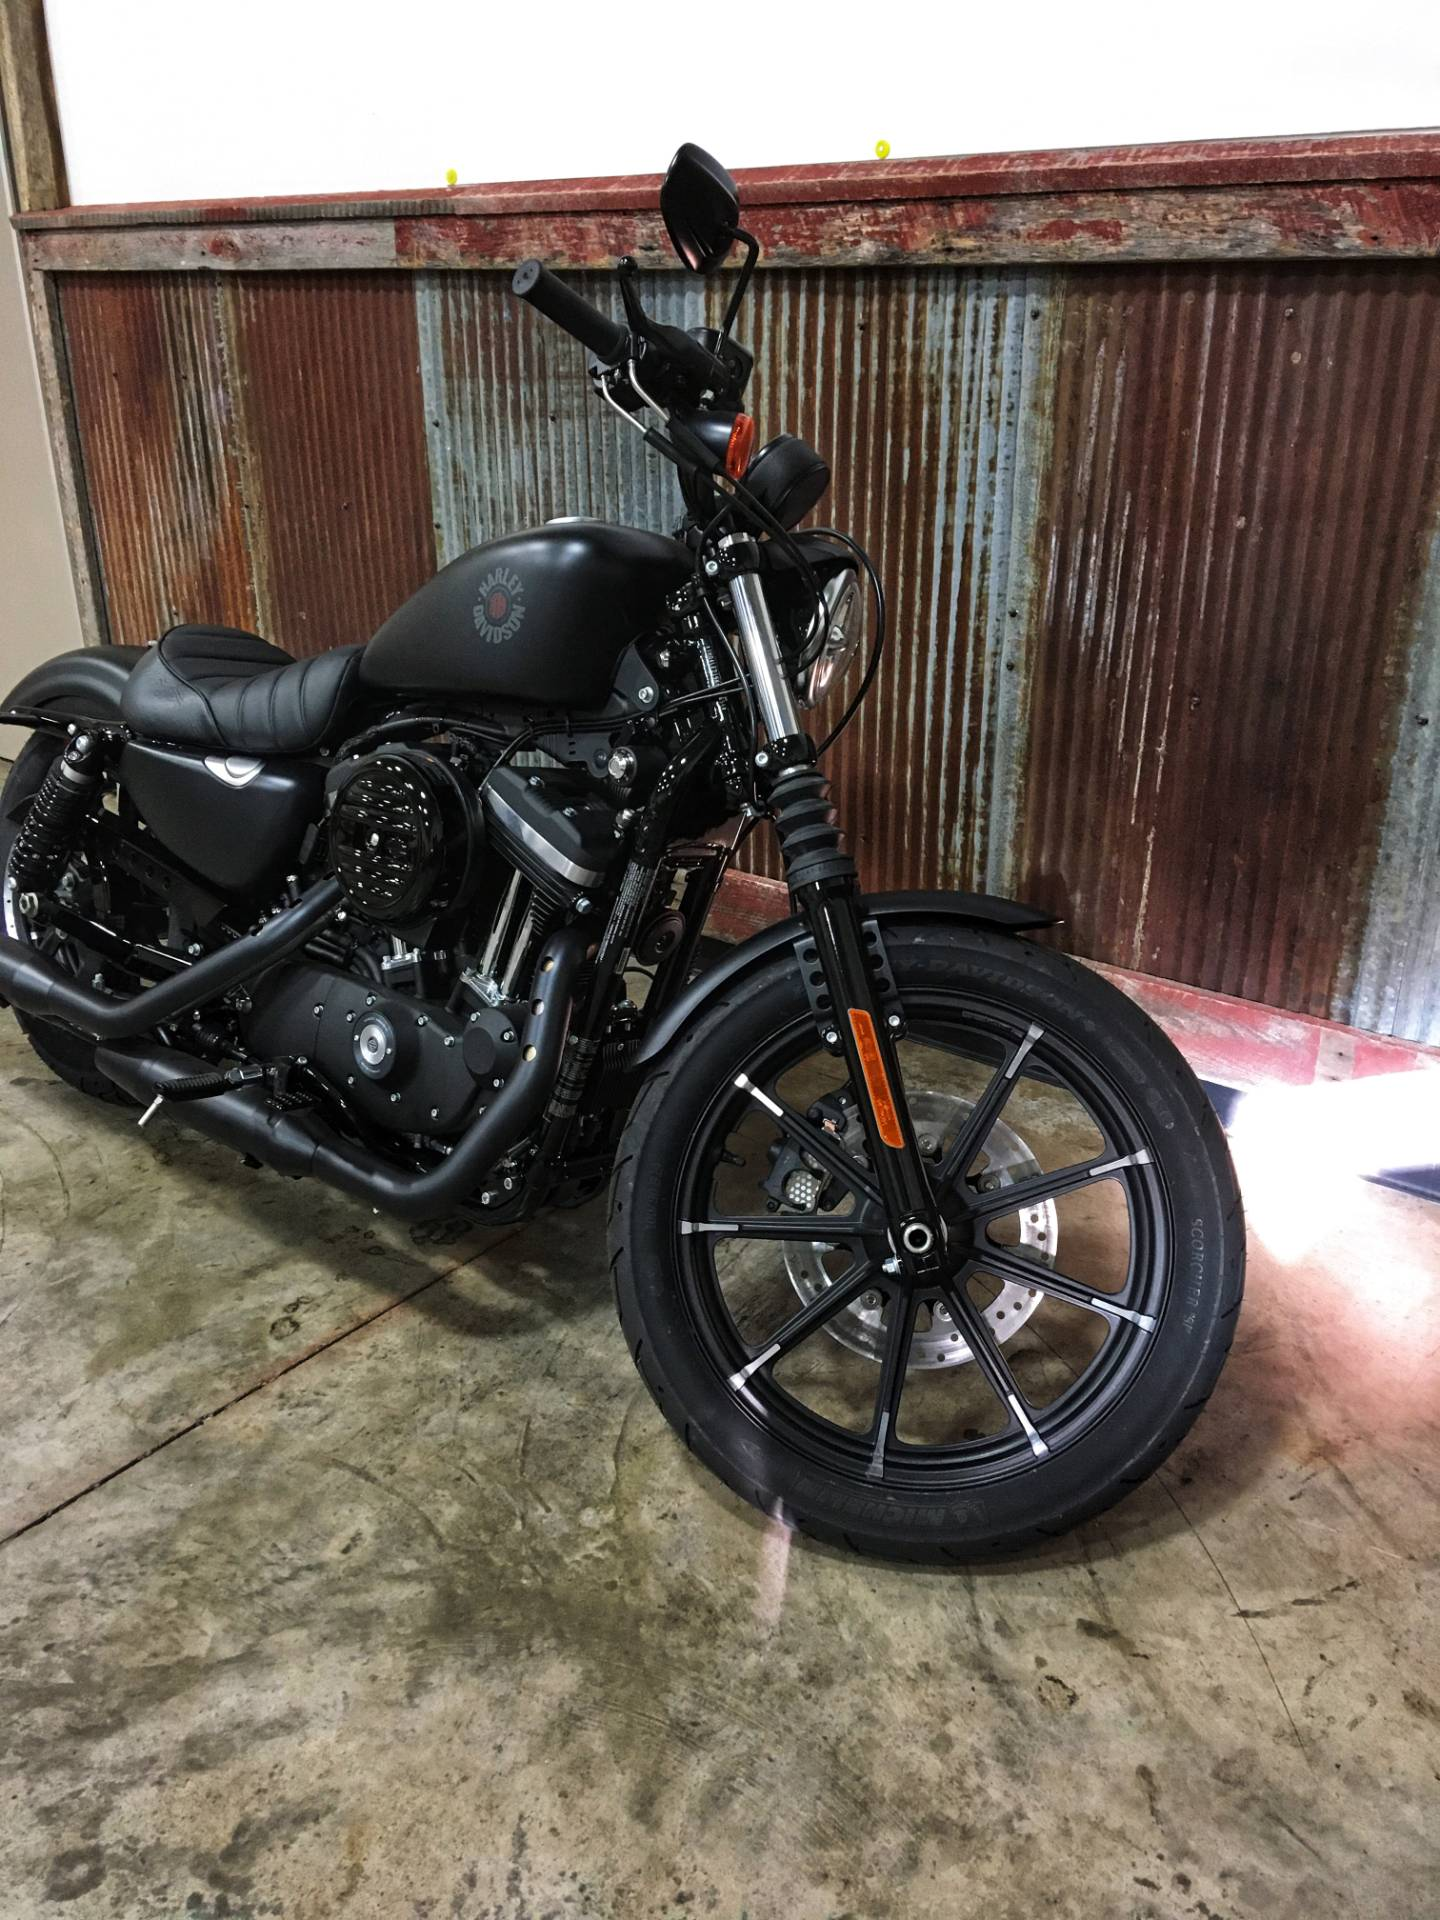 2019 Harley-Davidson Iron 883 in Chippewa Falls, Wisconsin - Photo 2